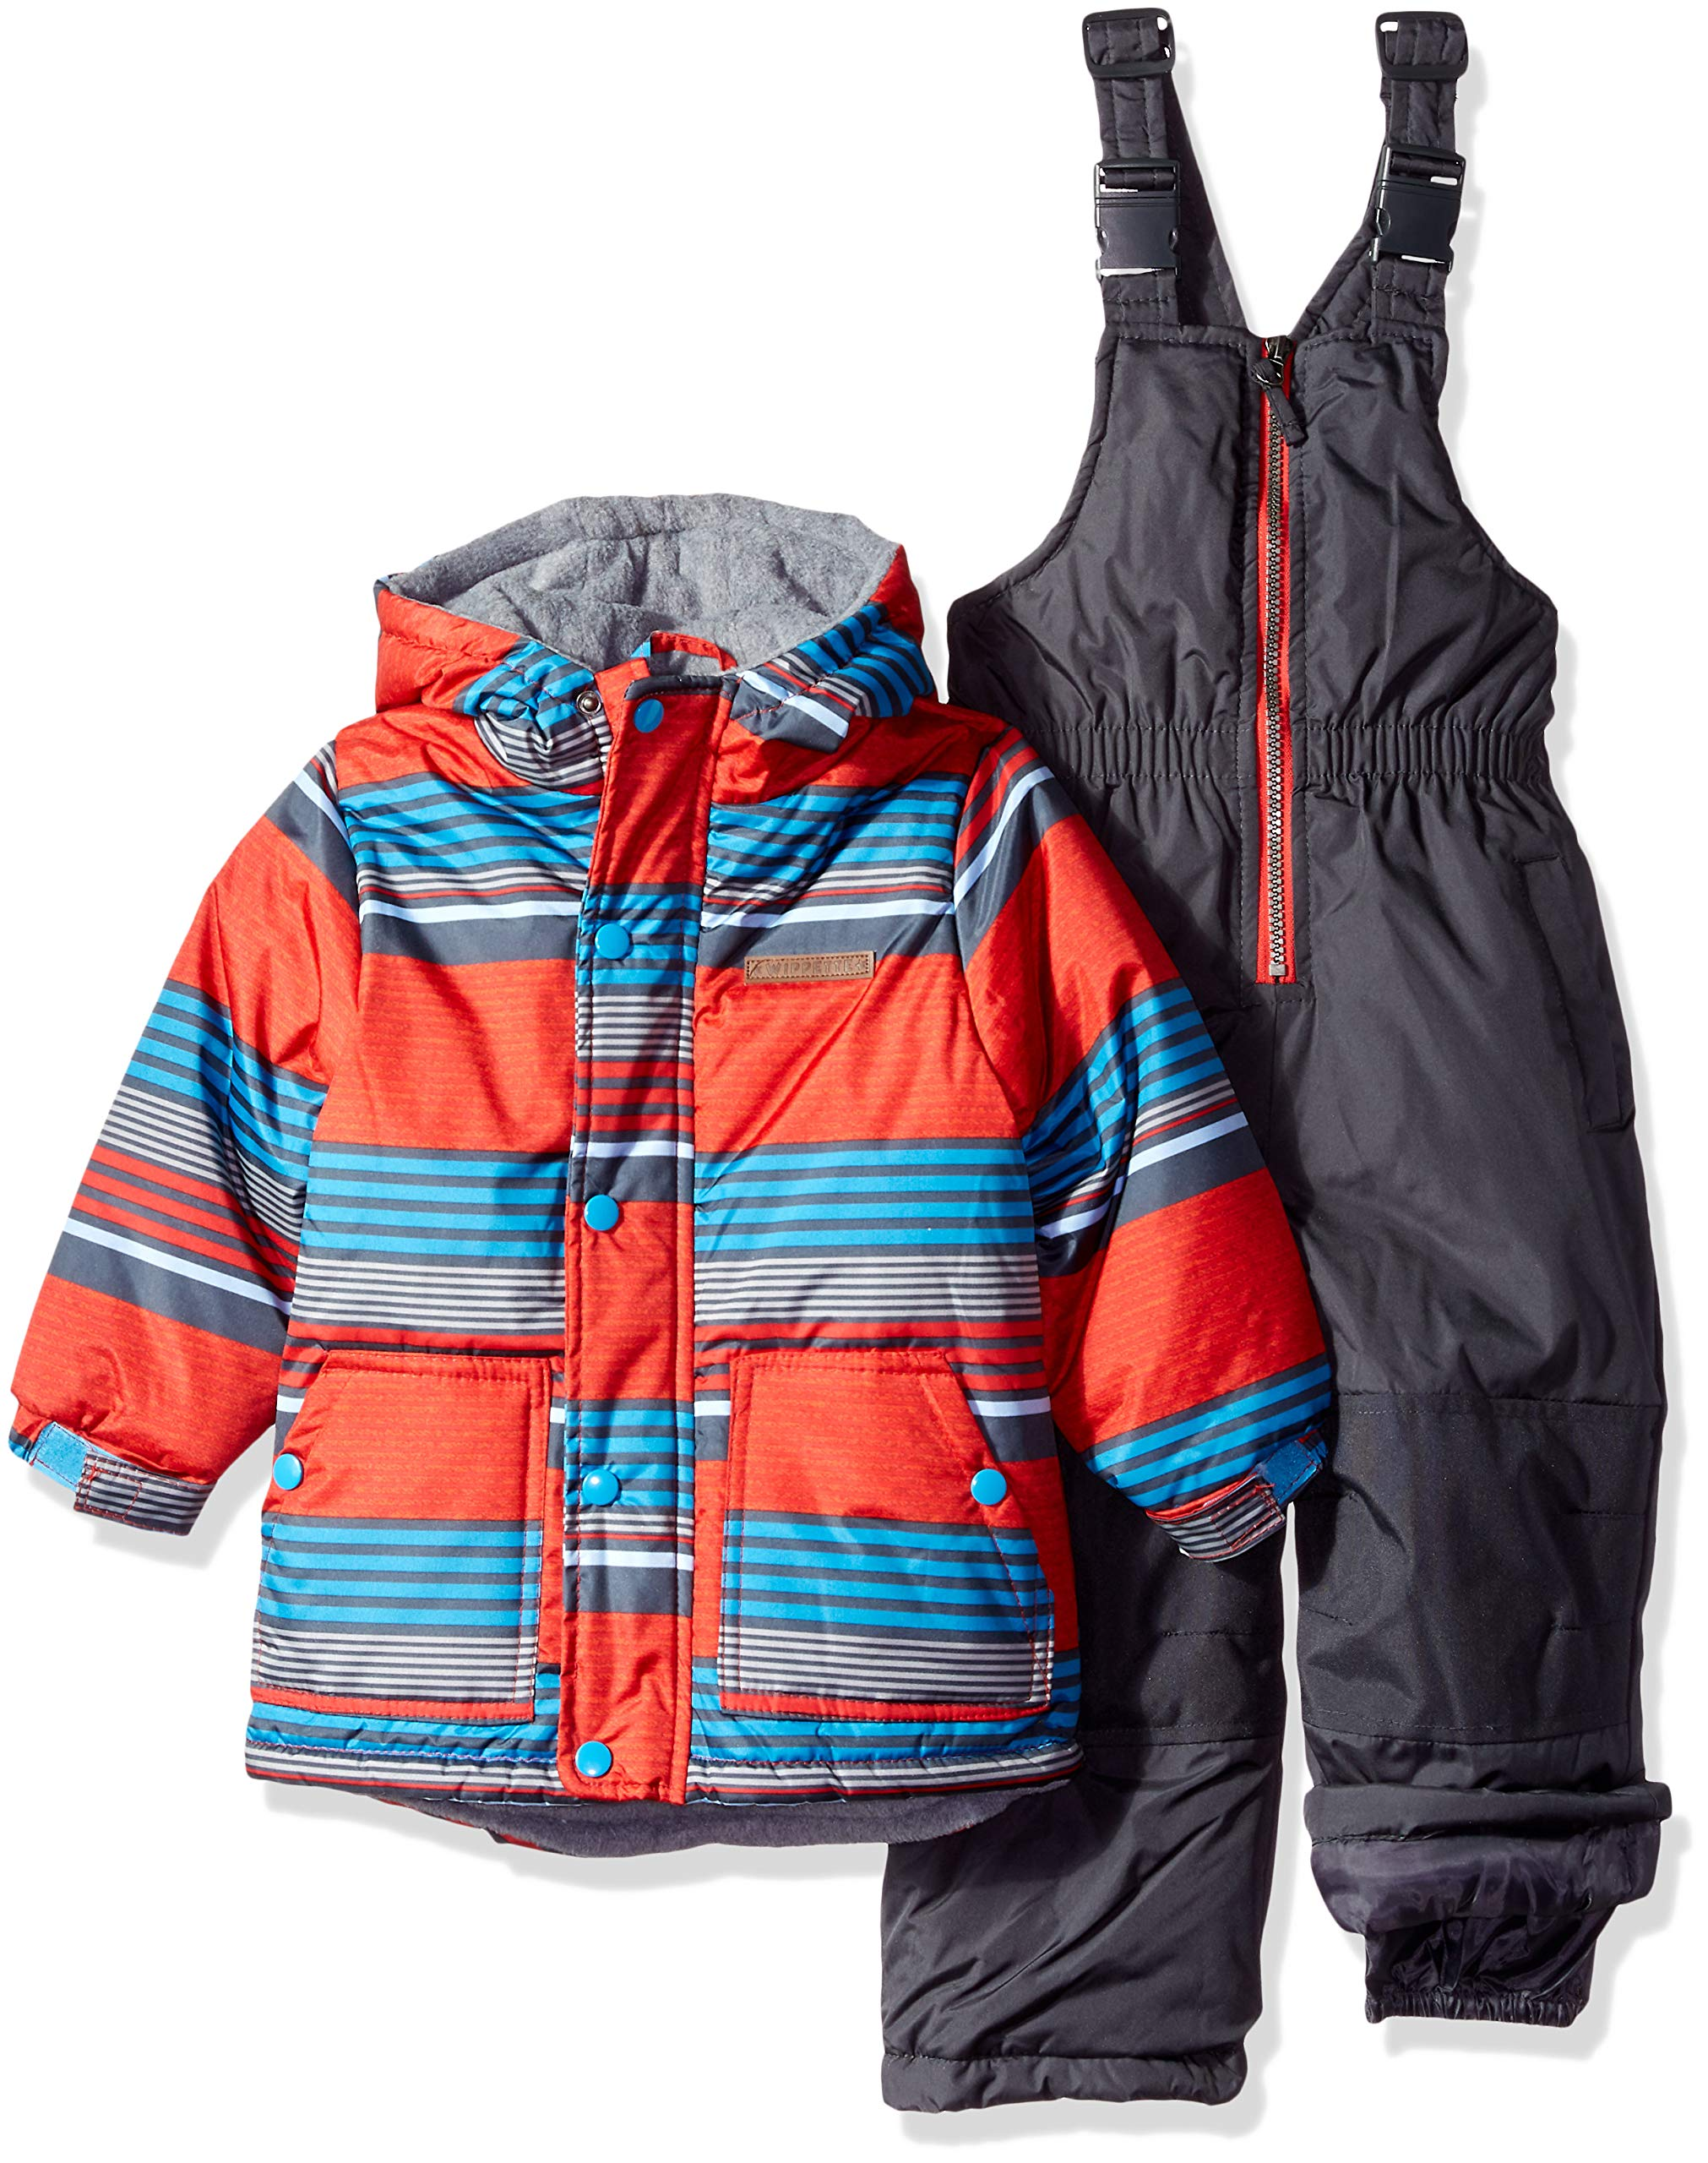 Wippette Baby Boys and Toddler Insulated Snowsuit, Striped Red, 2T by Wippette